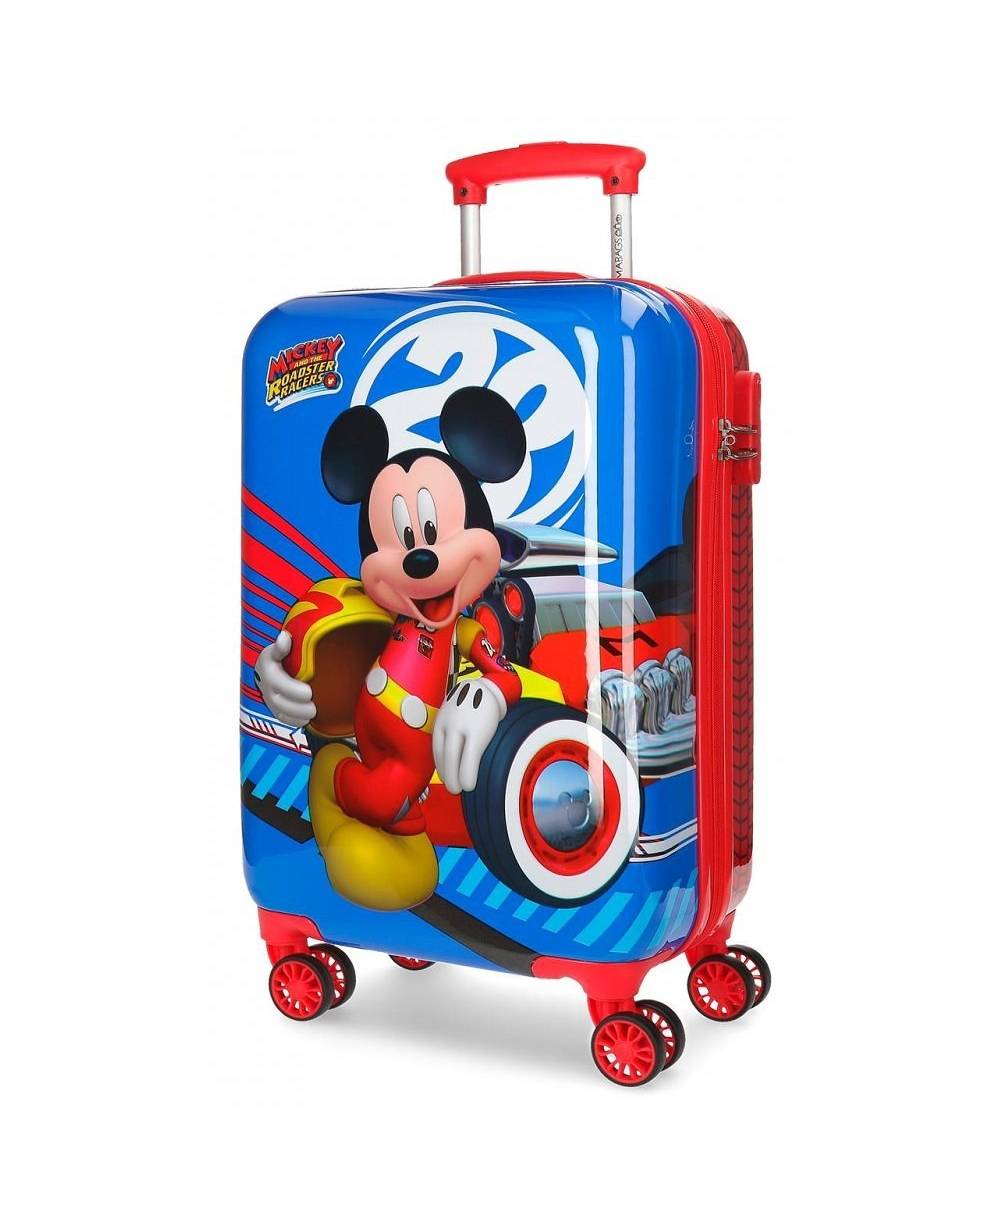 Mickey Mouse Maleta de cabina Mickey World Multicolor (Foto )